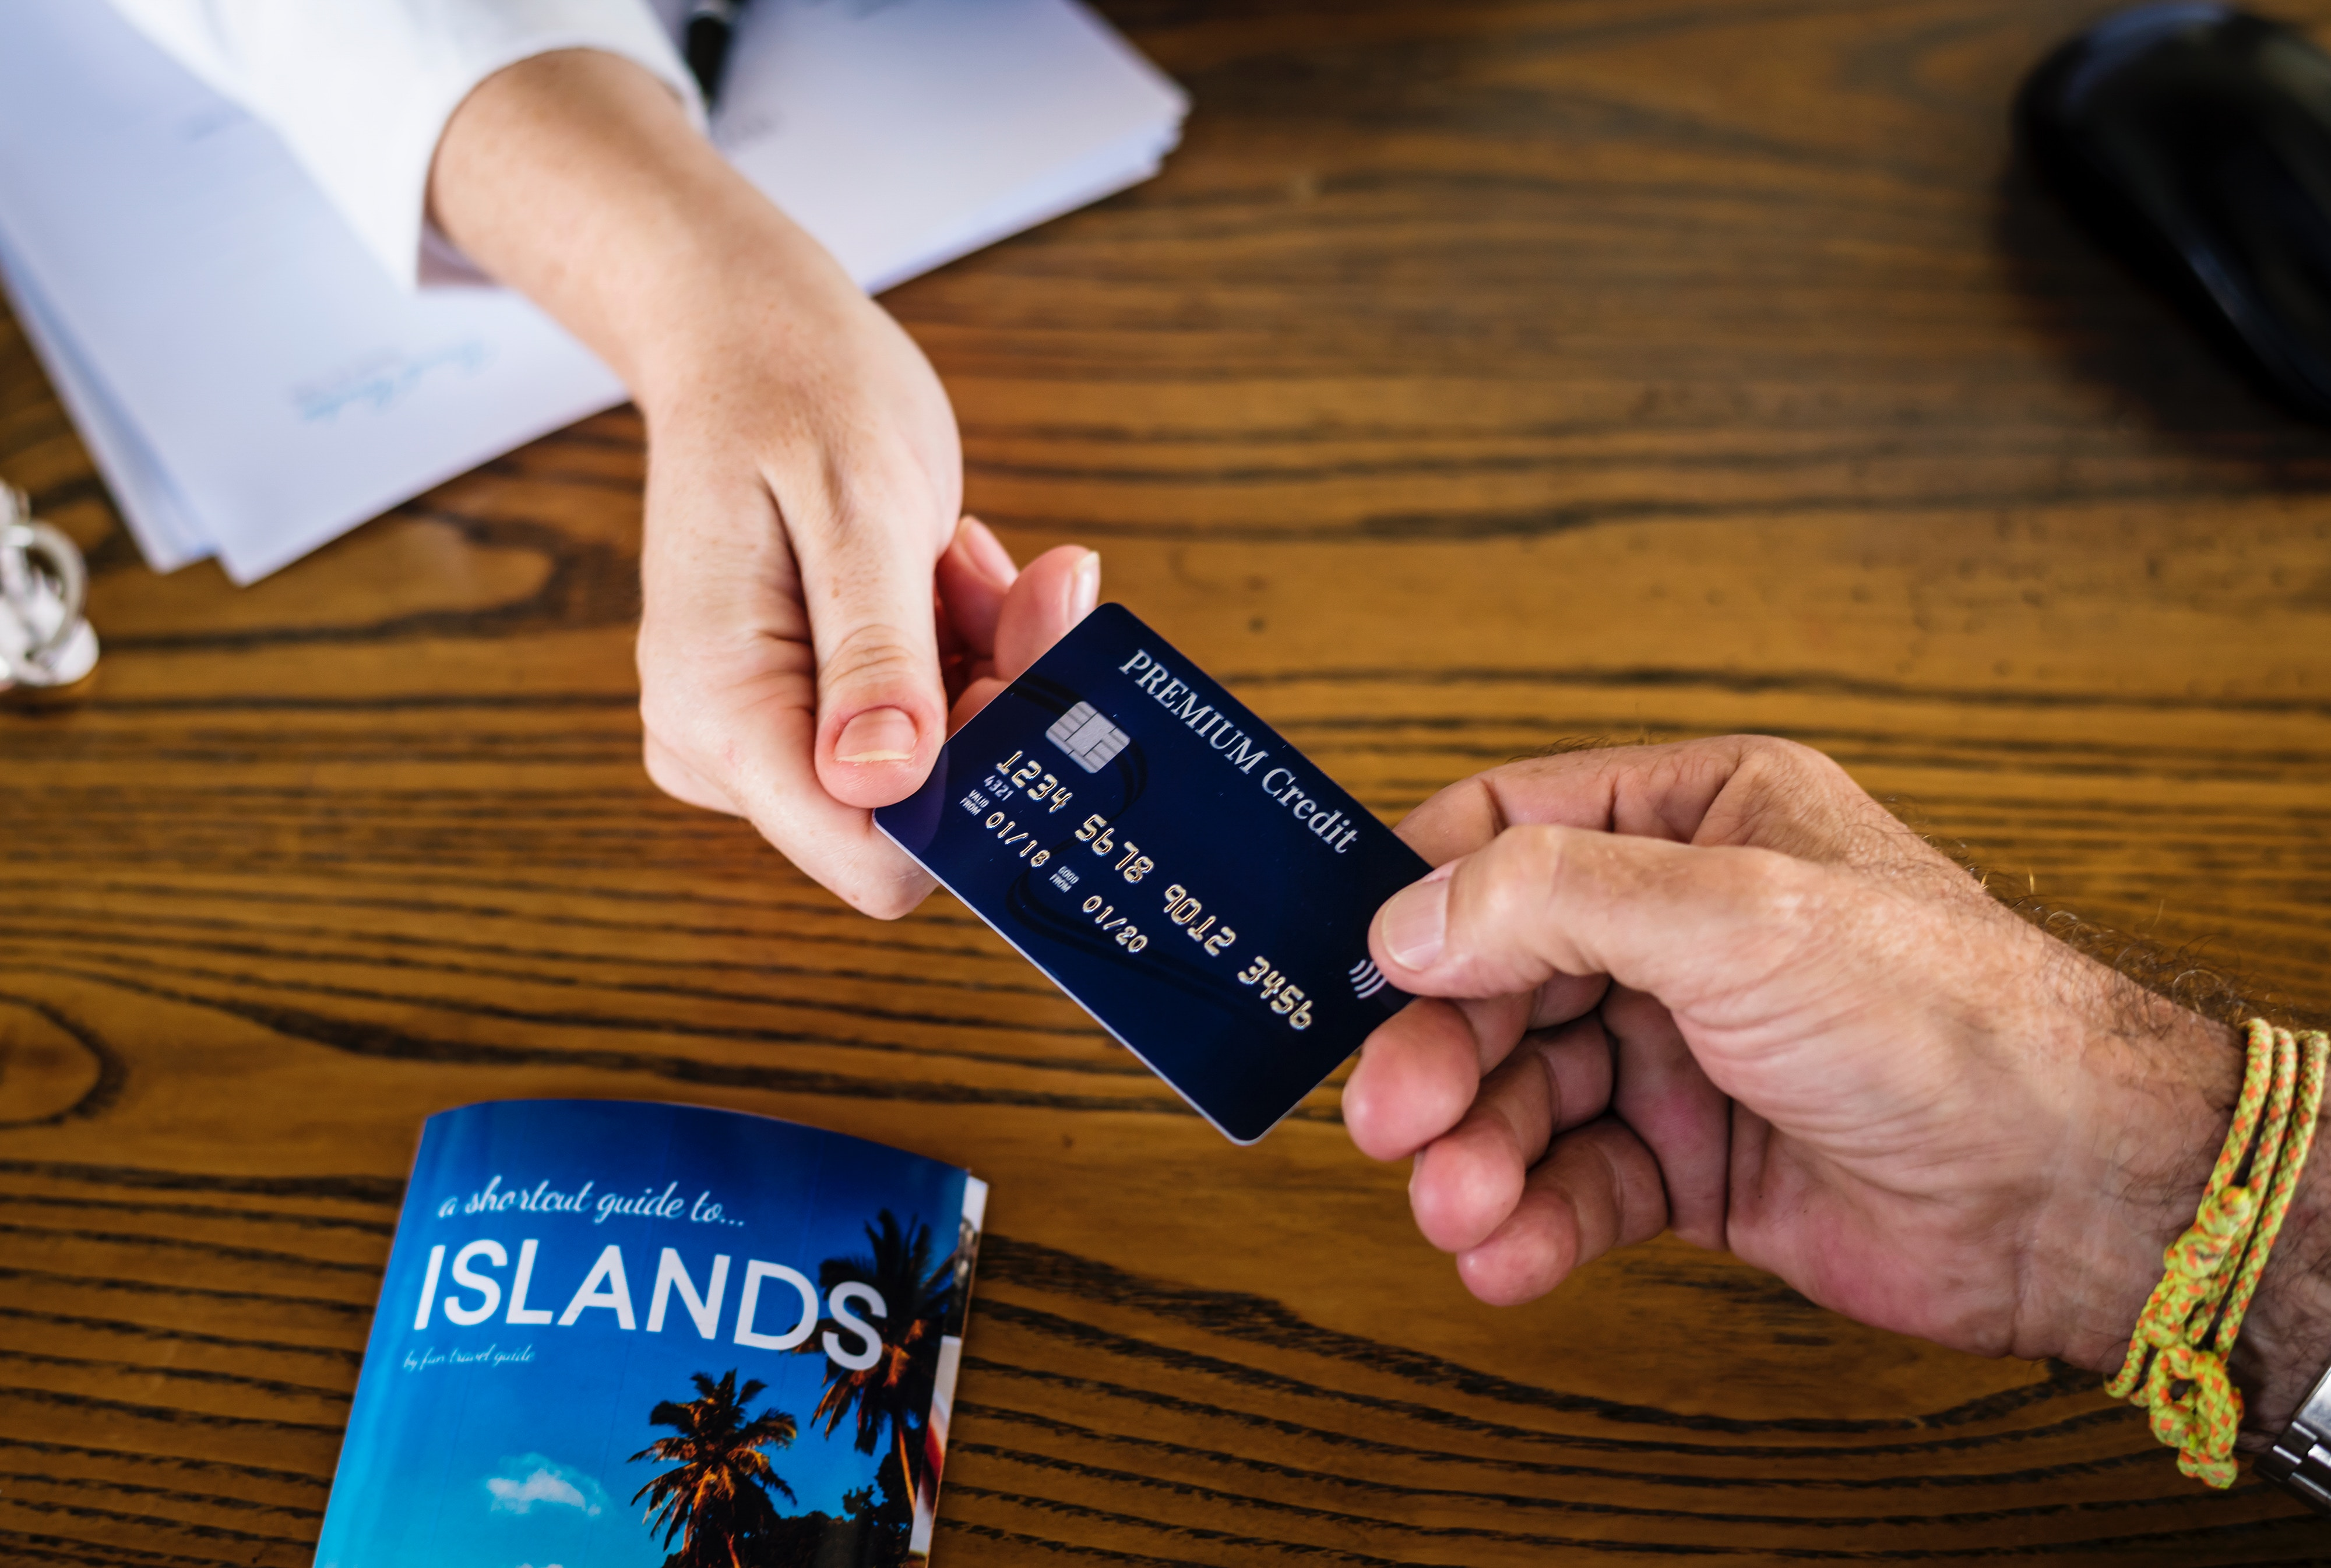 Credit card being held in hand